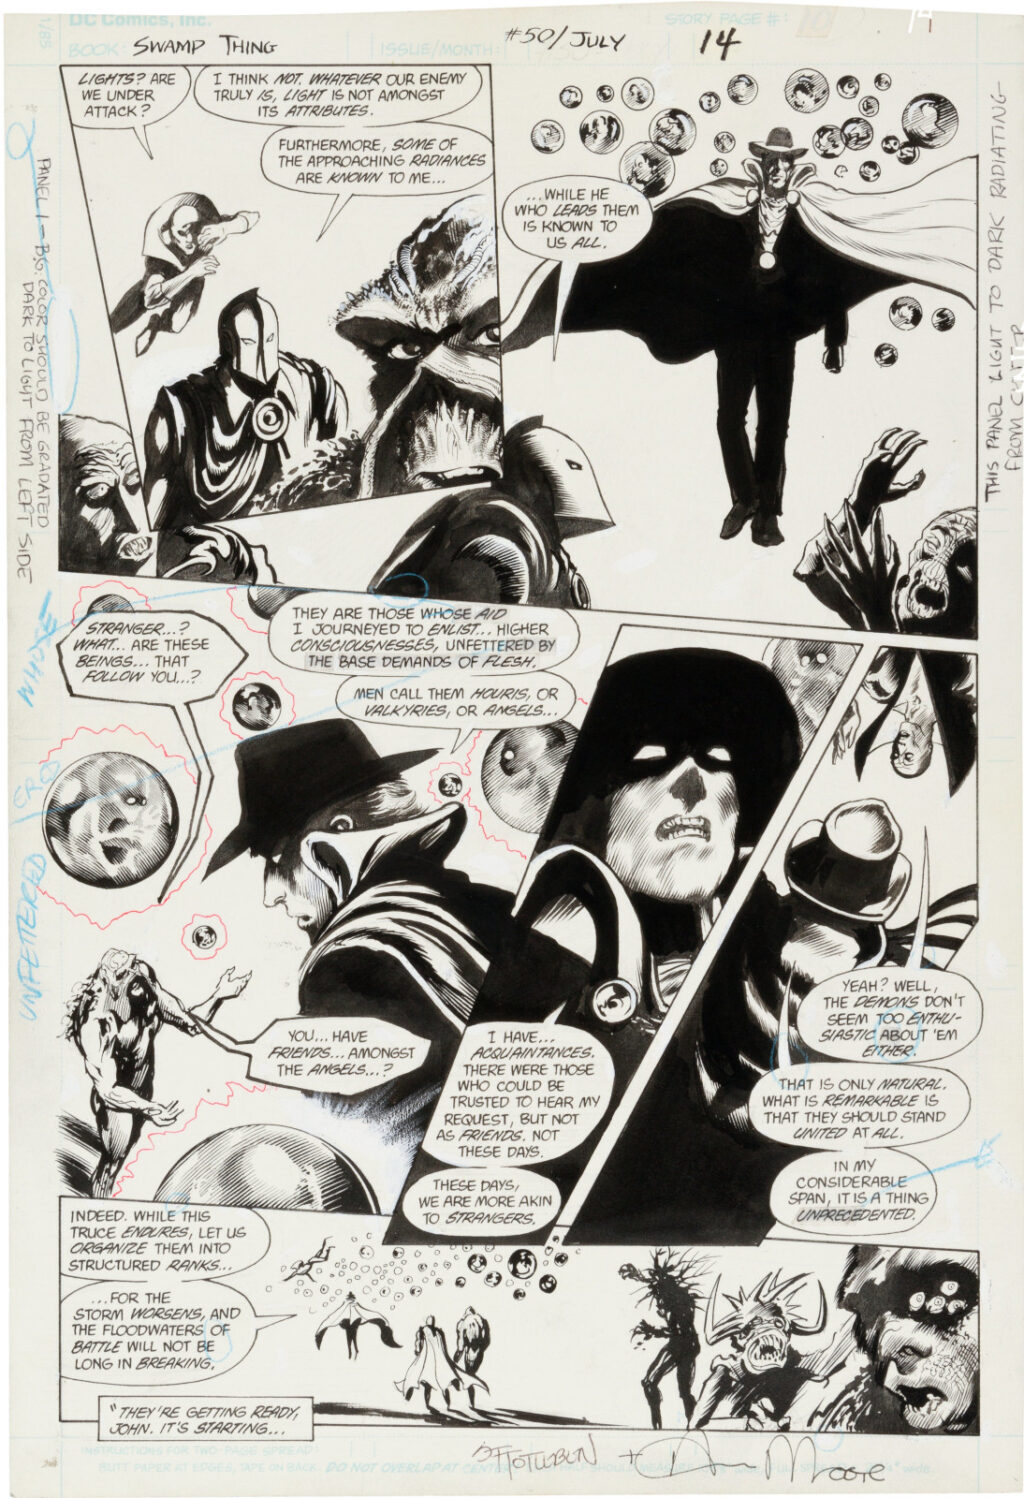 Swamp Thing issue 50 page 14 by Steve Bissette and John Totleben